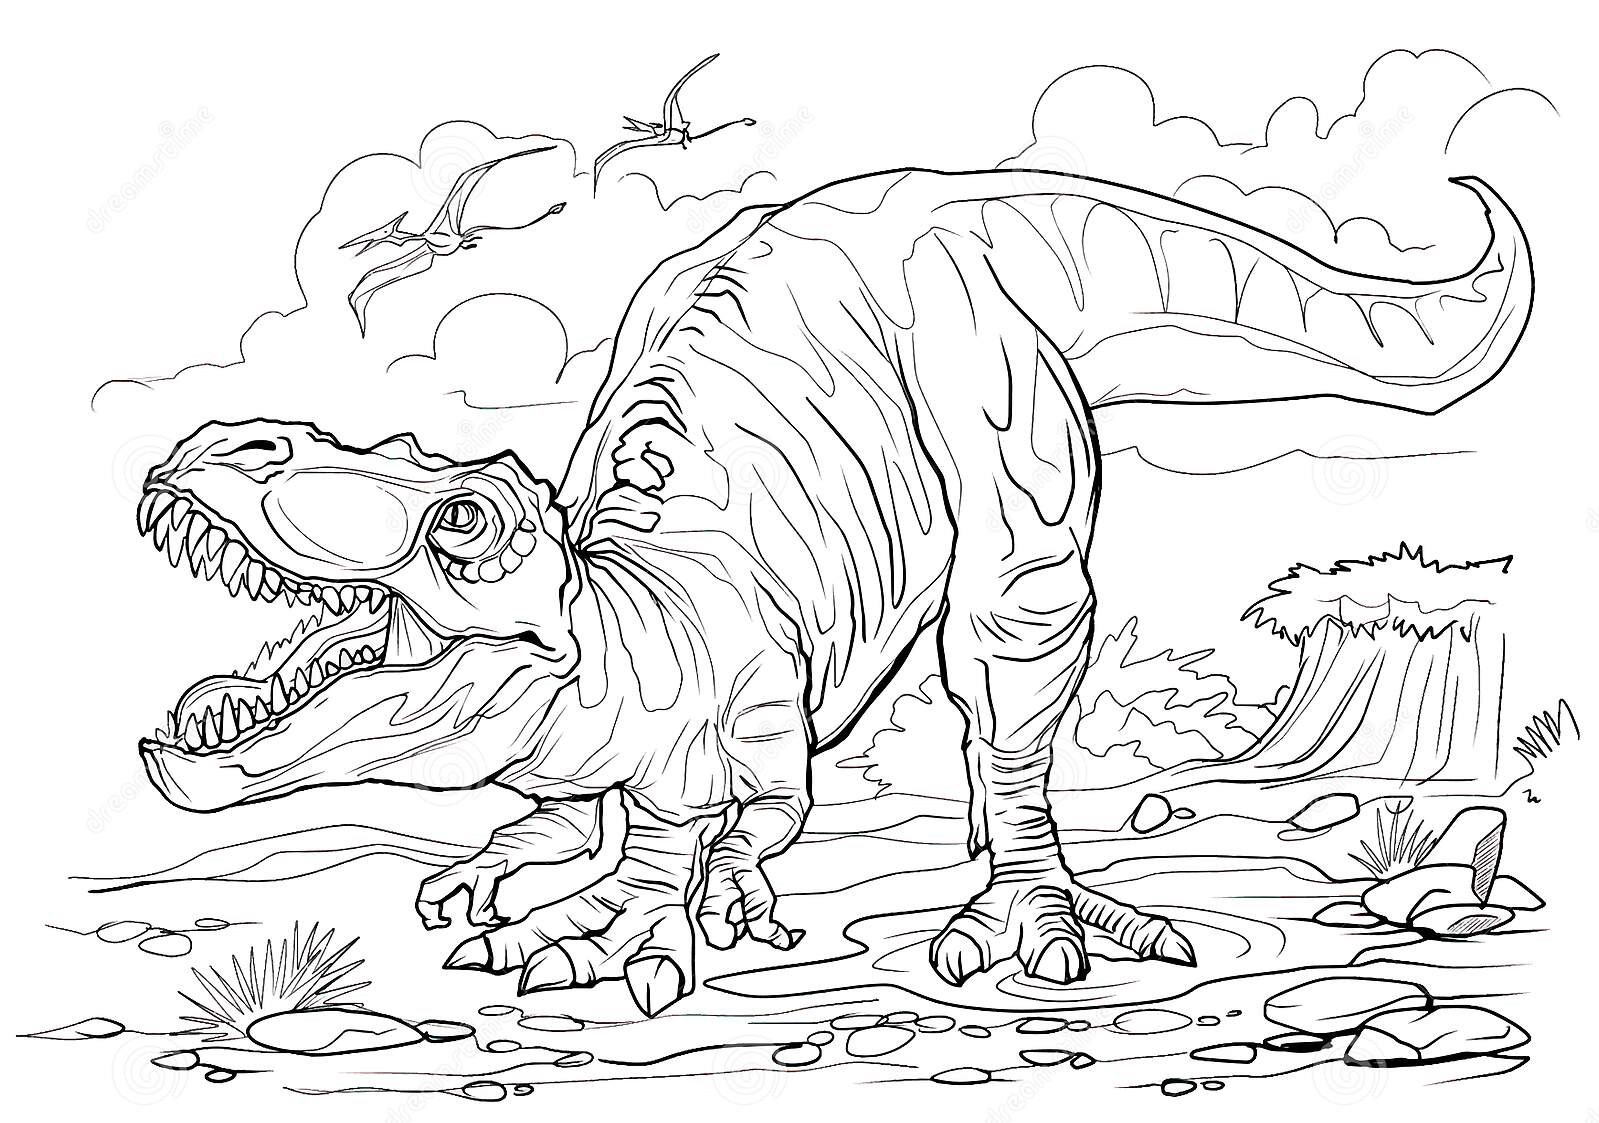 Allosaurus zoom in Coloring Page